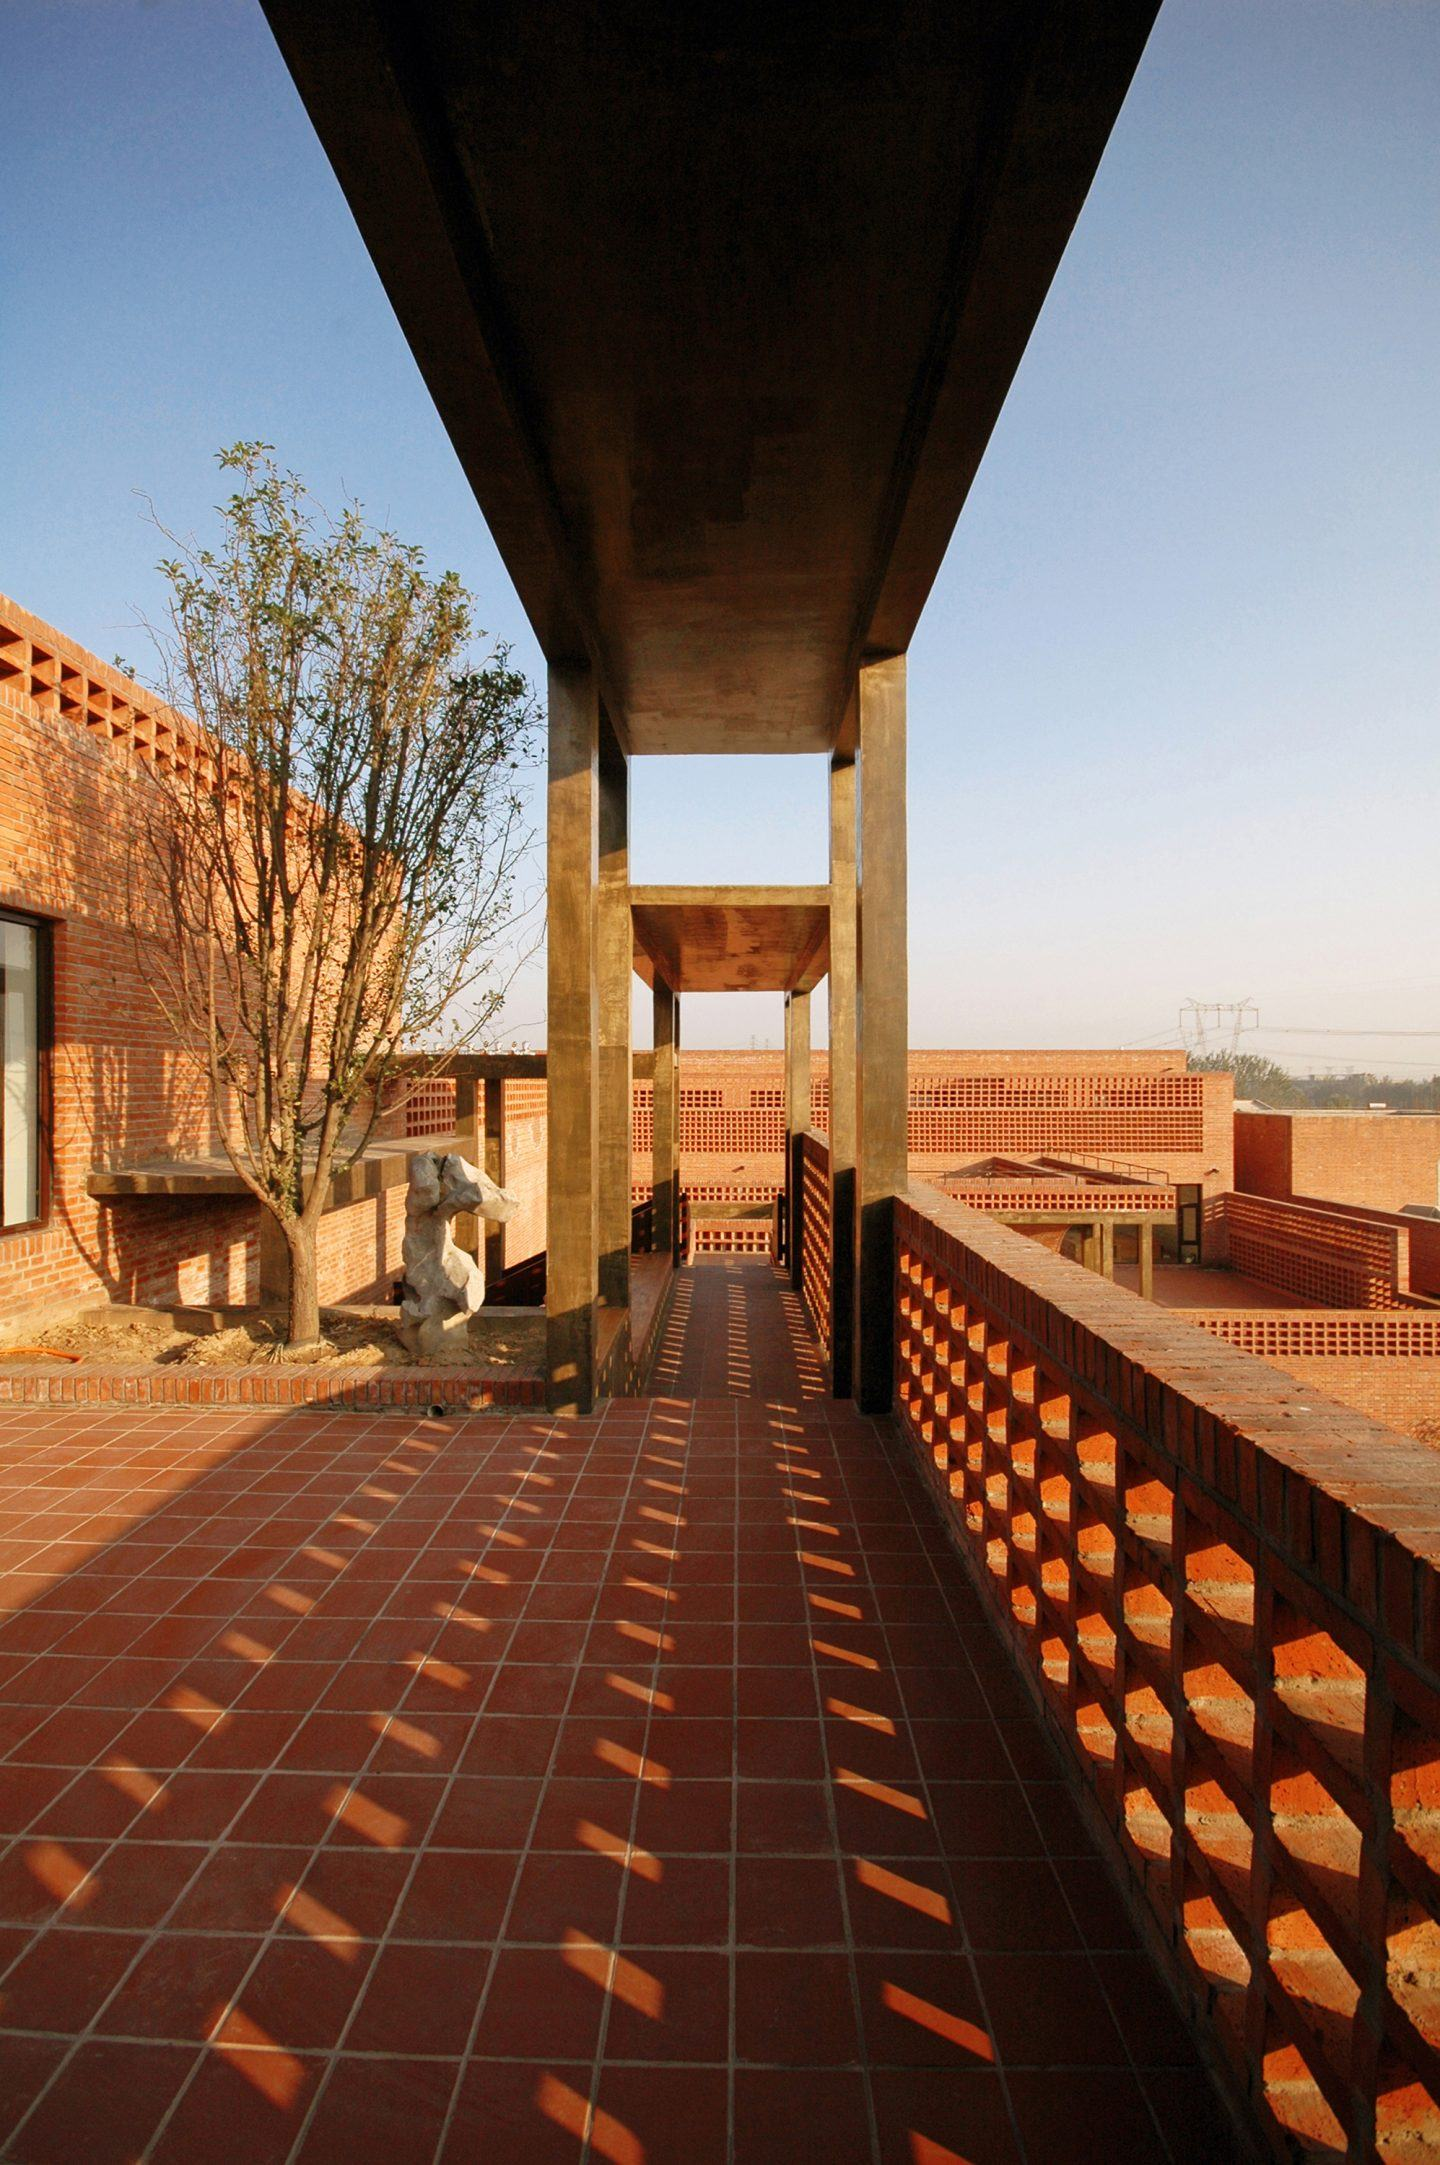 IGNANT-Architecture-Atelier-100s+1-Xiang-Jing-Qu-Guangci-007